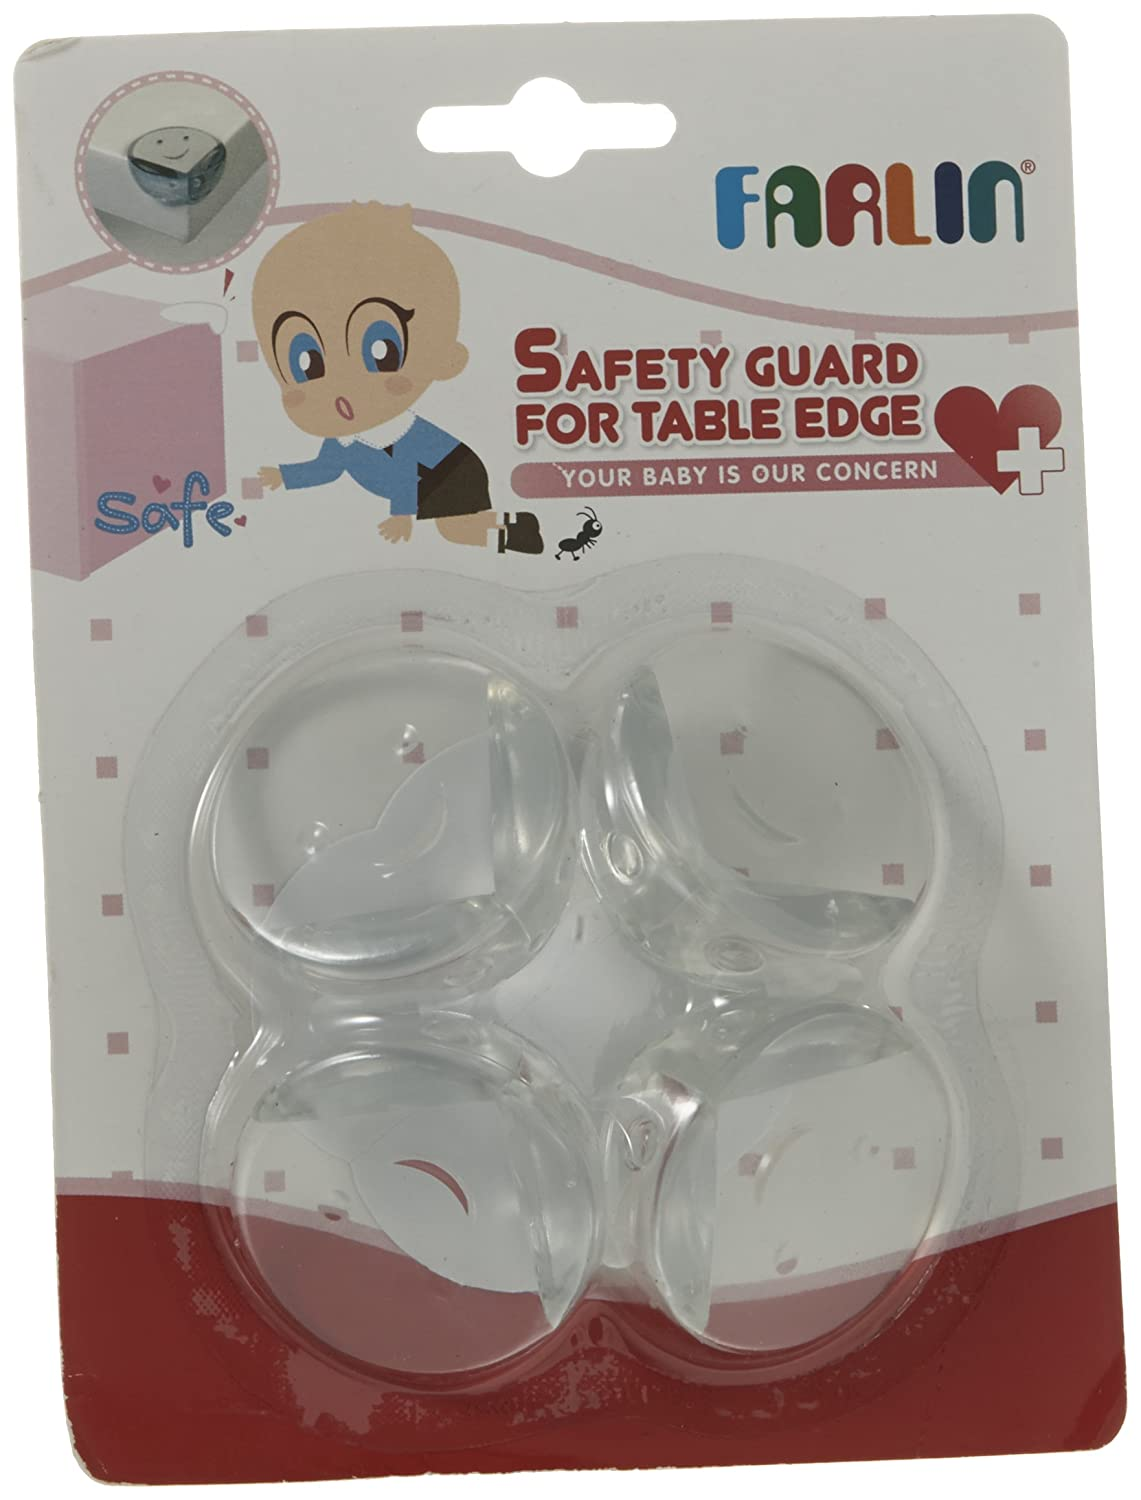 table edge guard. buy farlin safety guard for table edge online at low prices in india - amazon.in